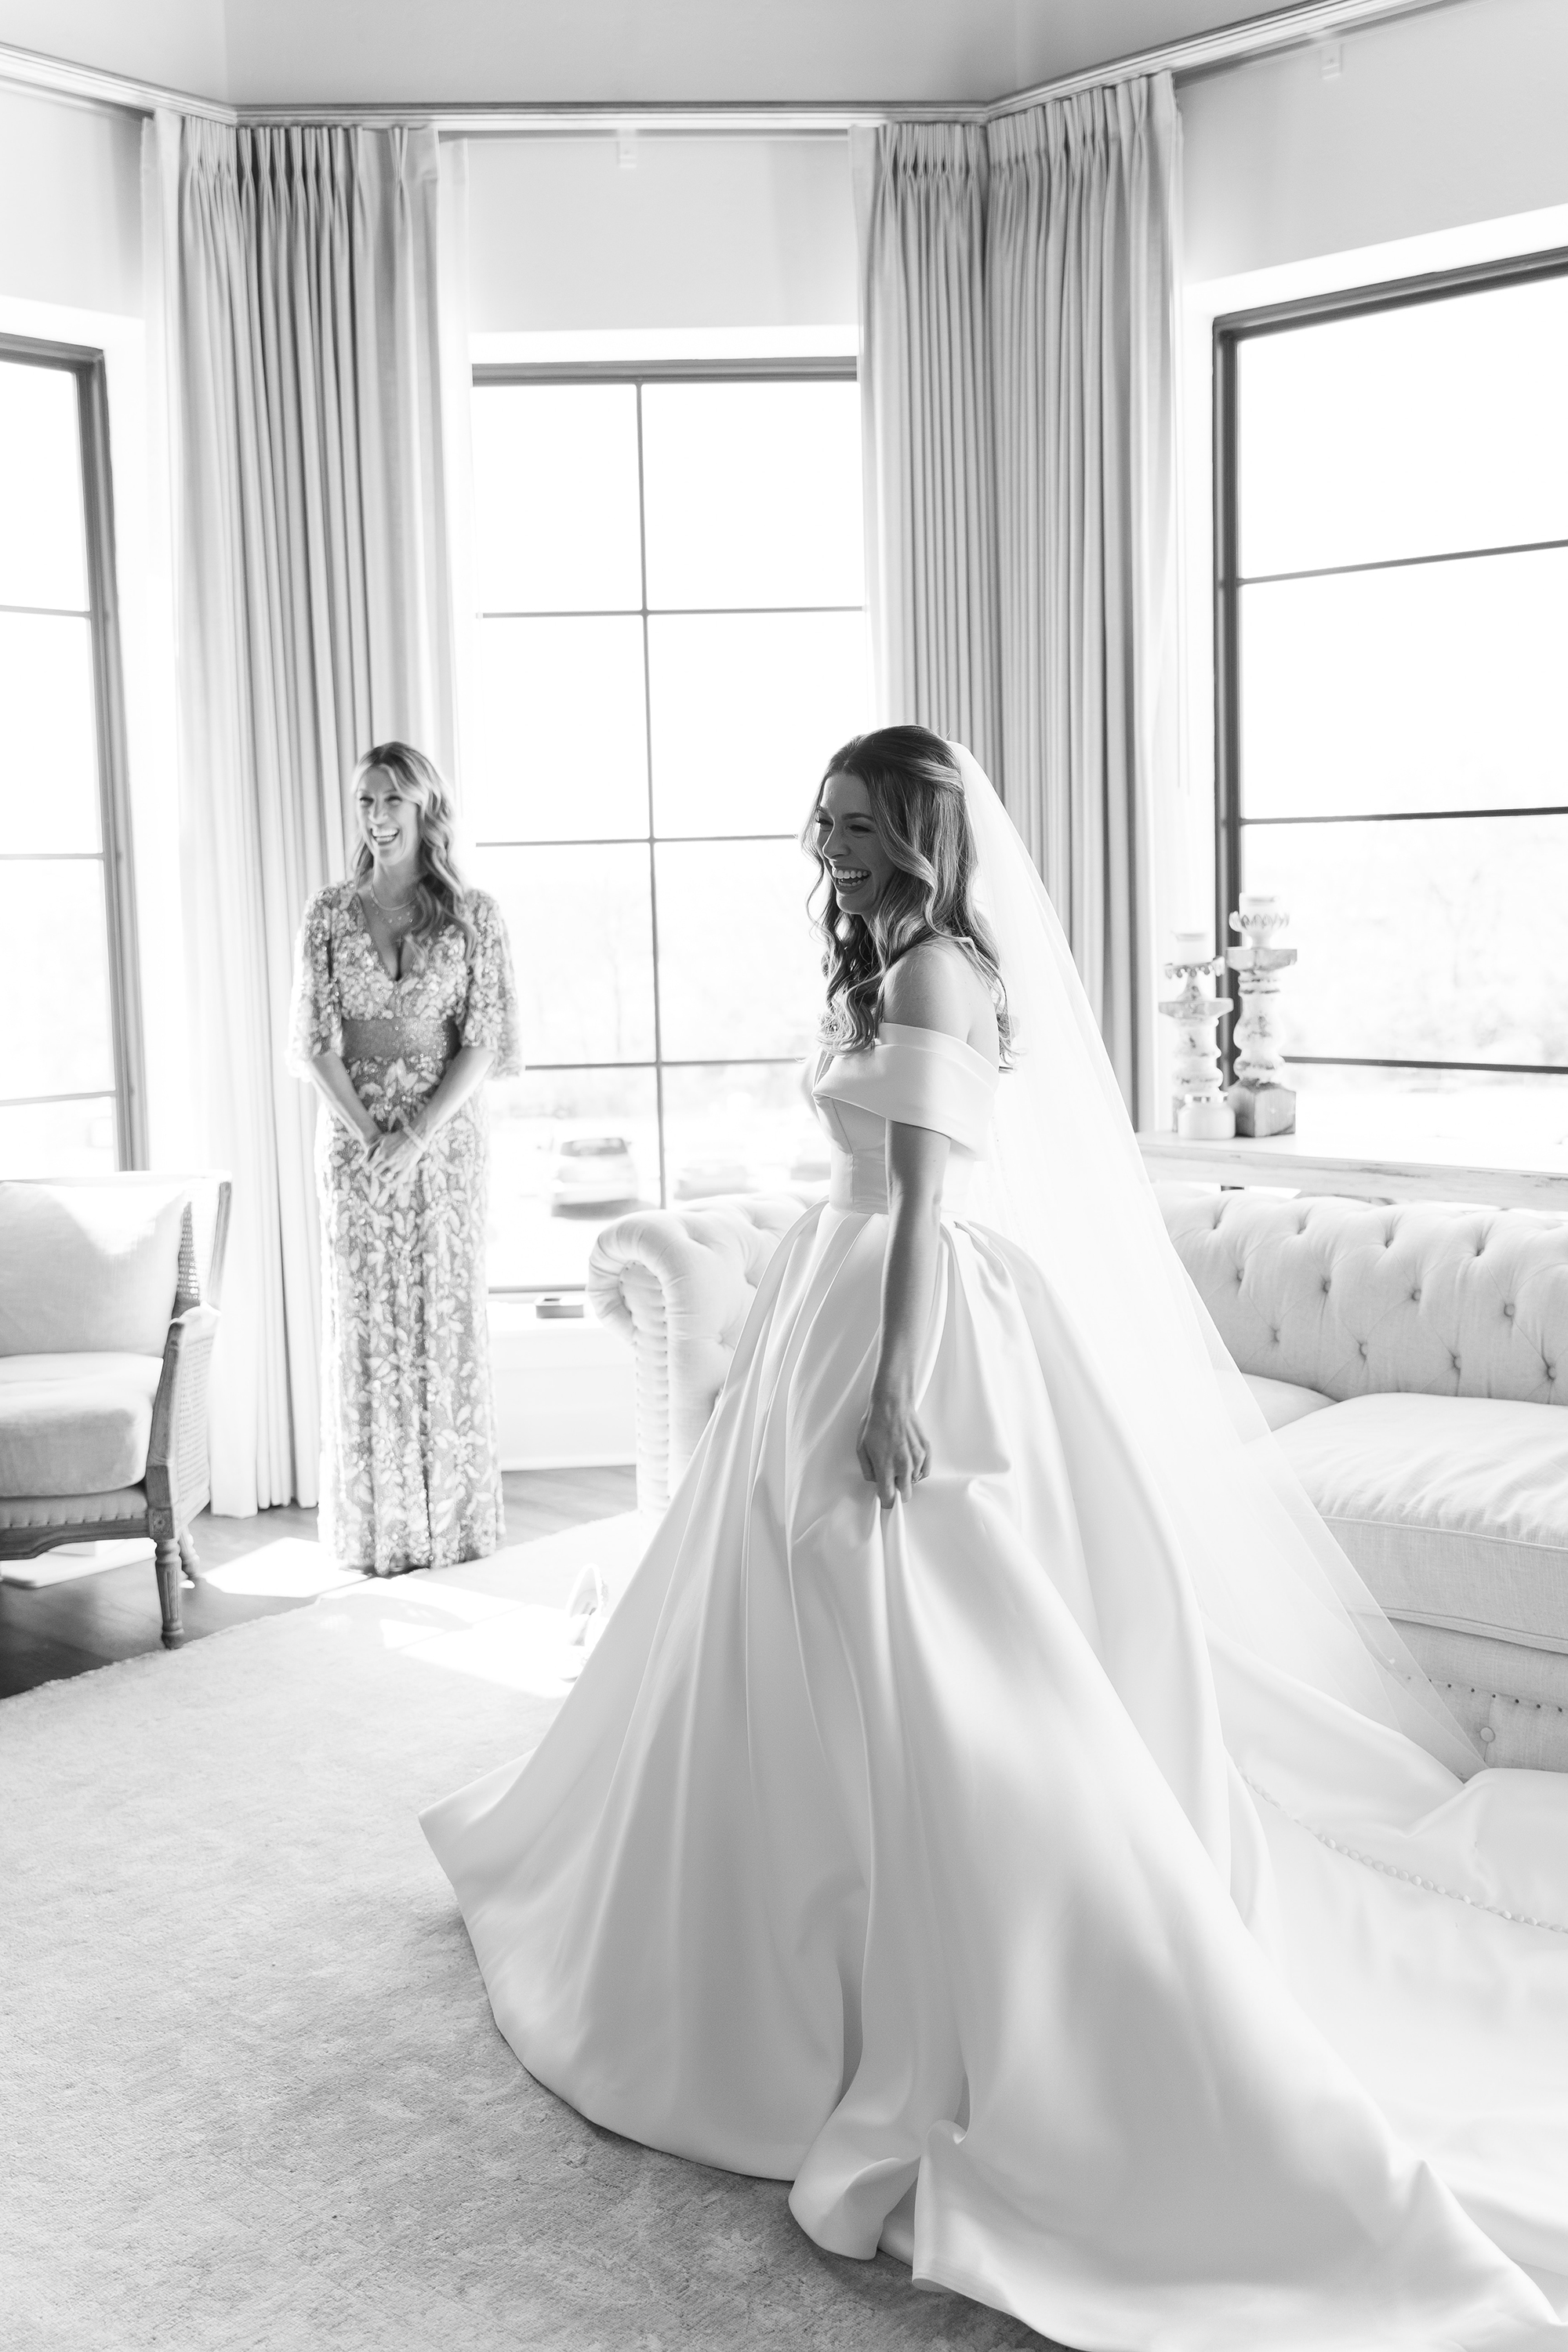 The bride smiles in her wedding dress while her mom is next to her in the bridal suite.